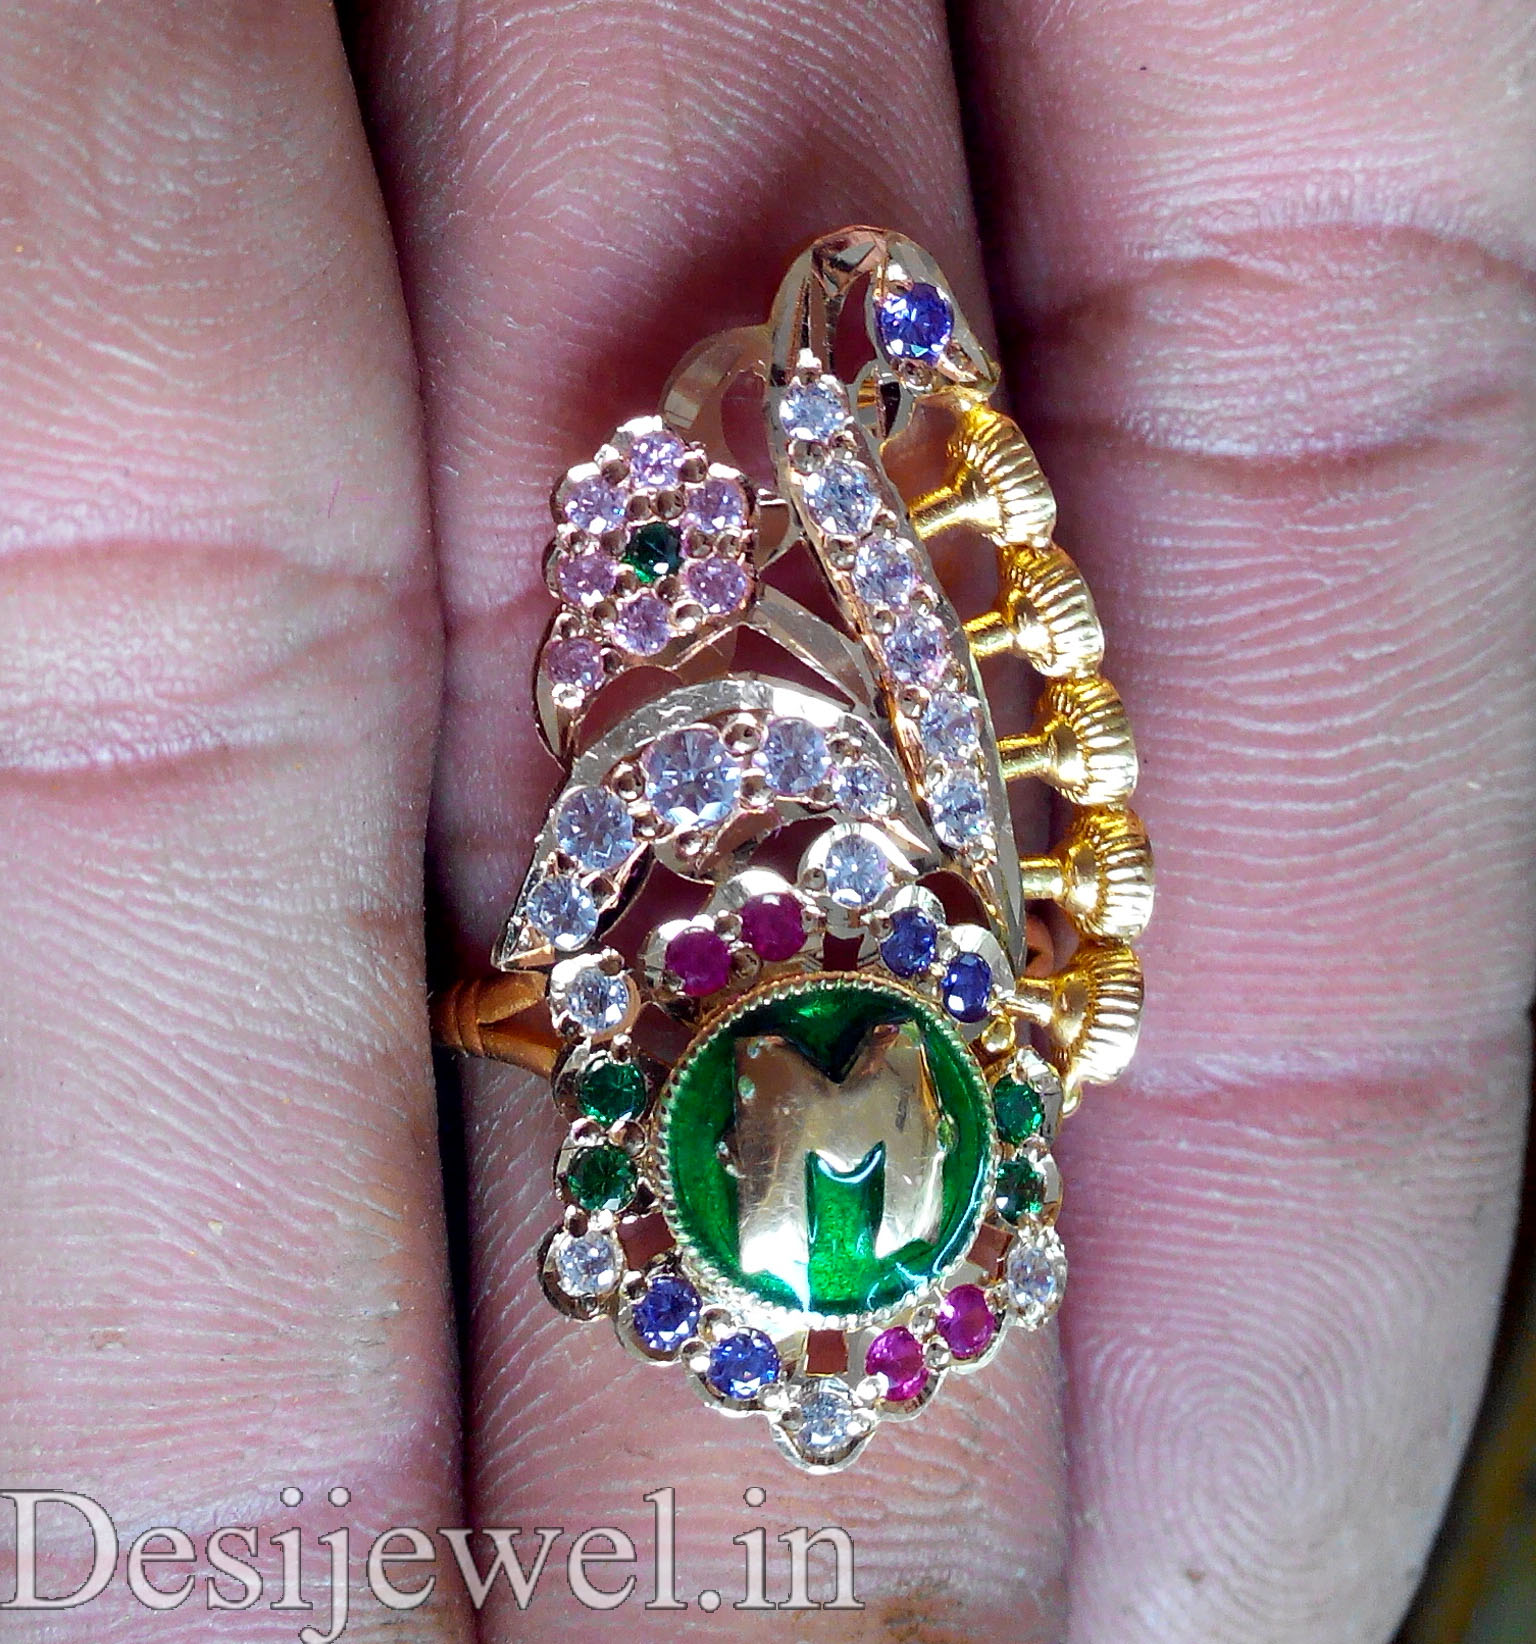 Rajasthani Gold Desi Ladies Ring Jewellery  in Jodhpur with weight of 5 GM